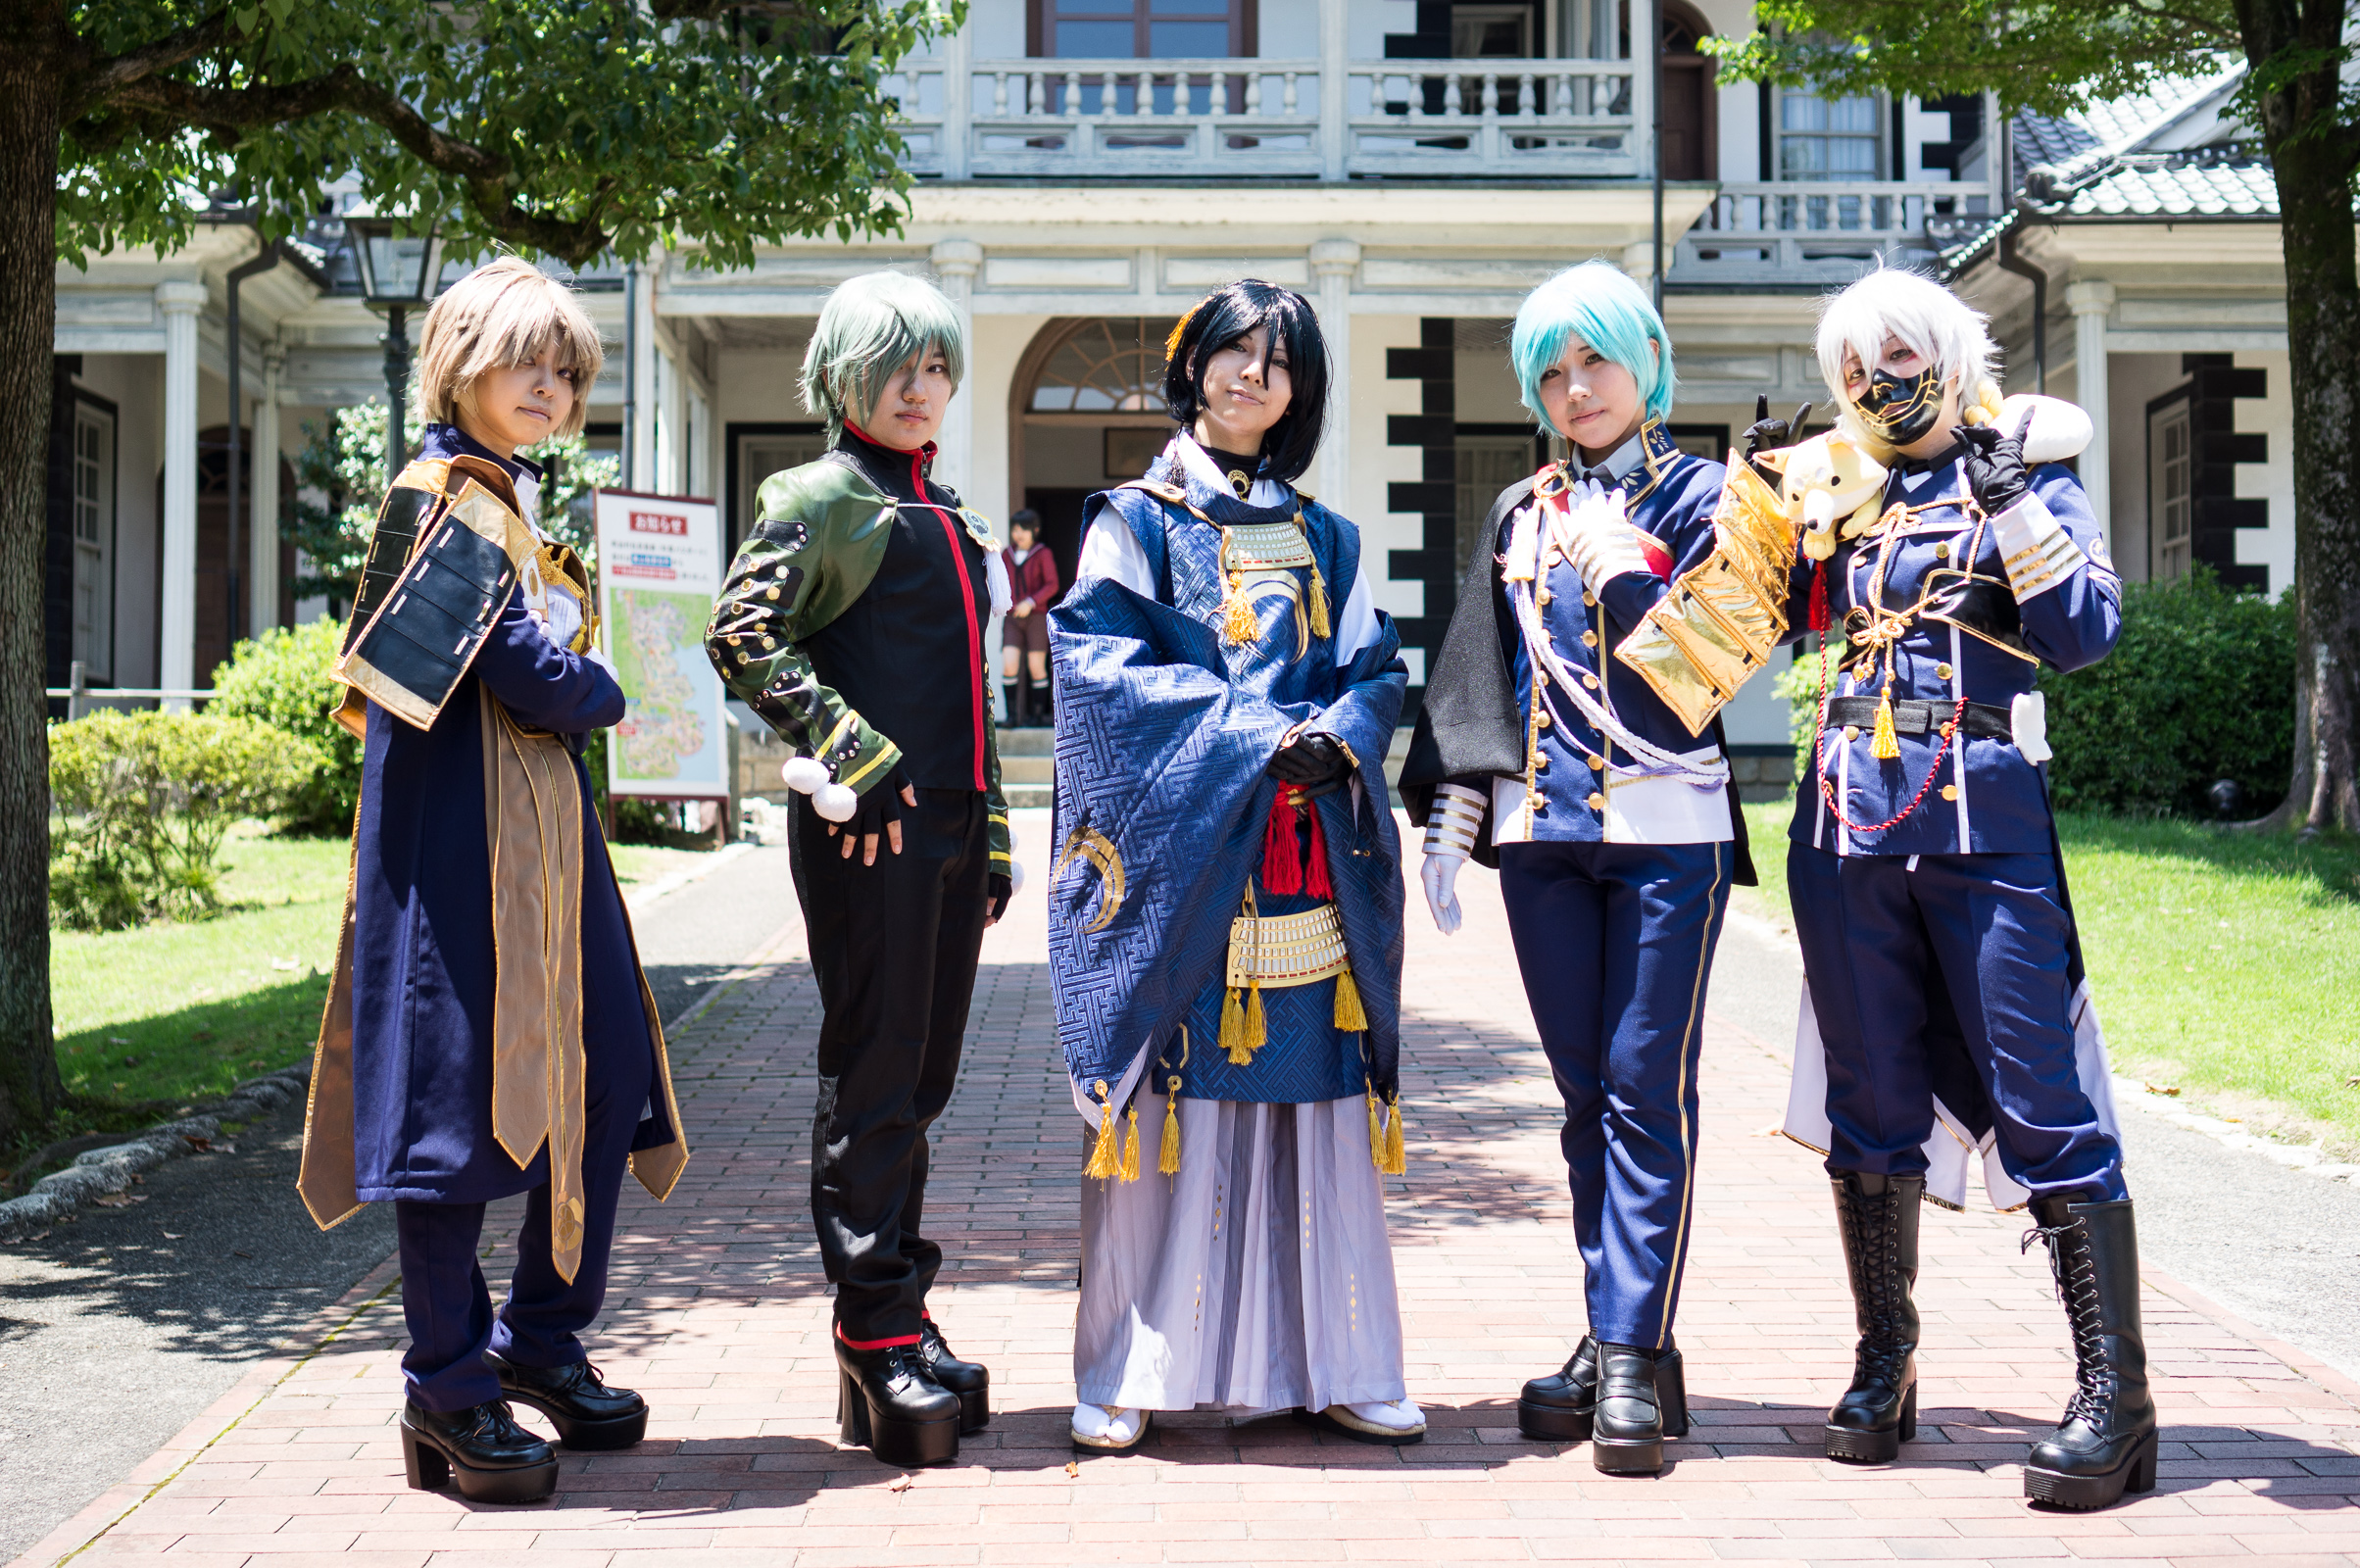 World Cosplay Summit 2015: A spectator's view - Japan Daily